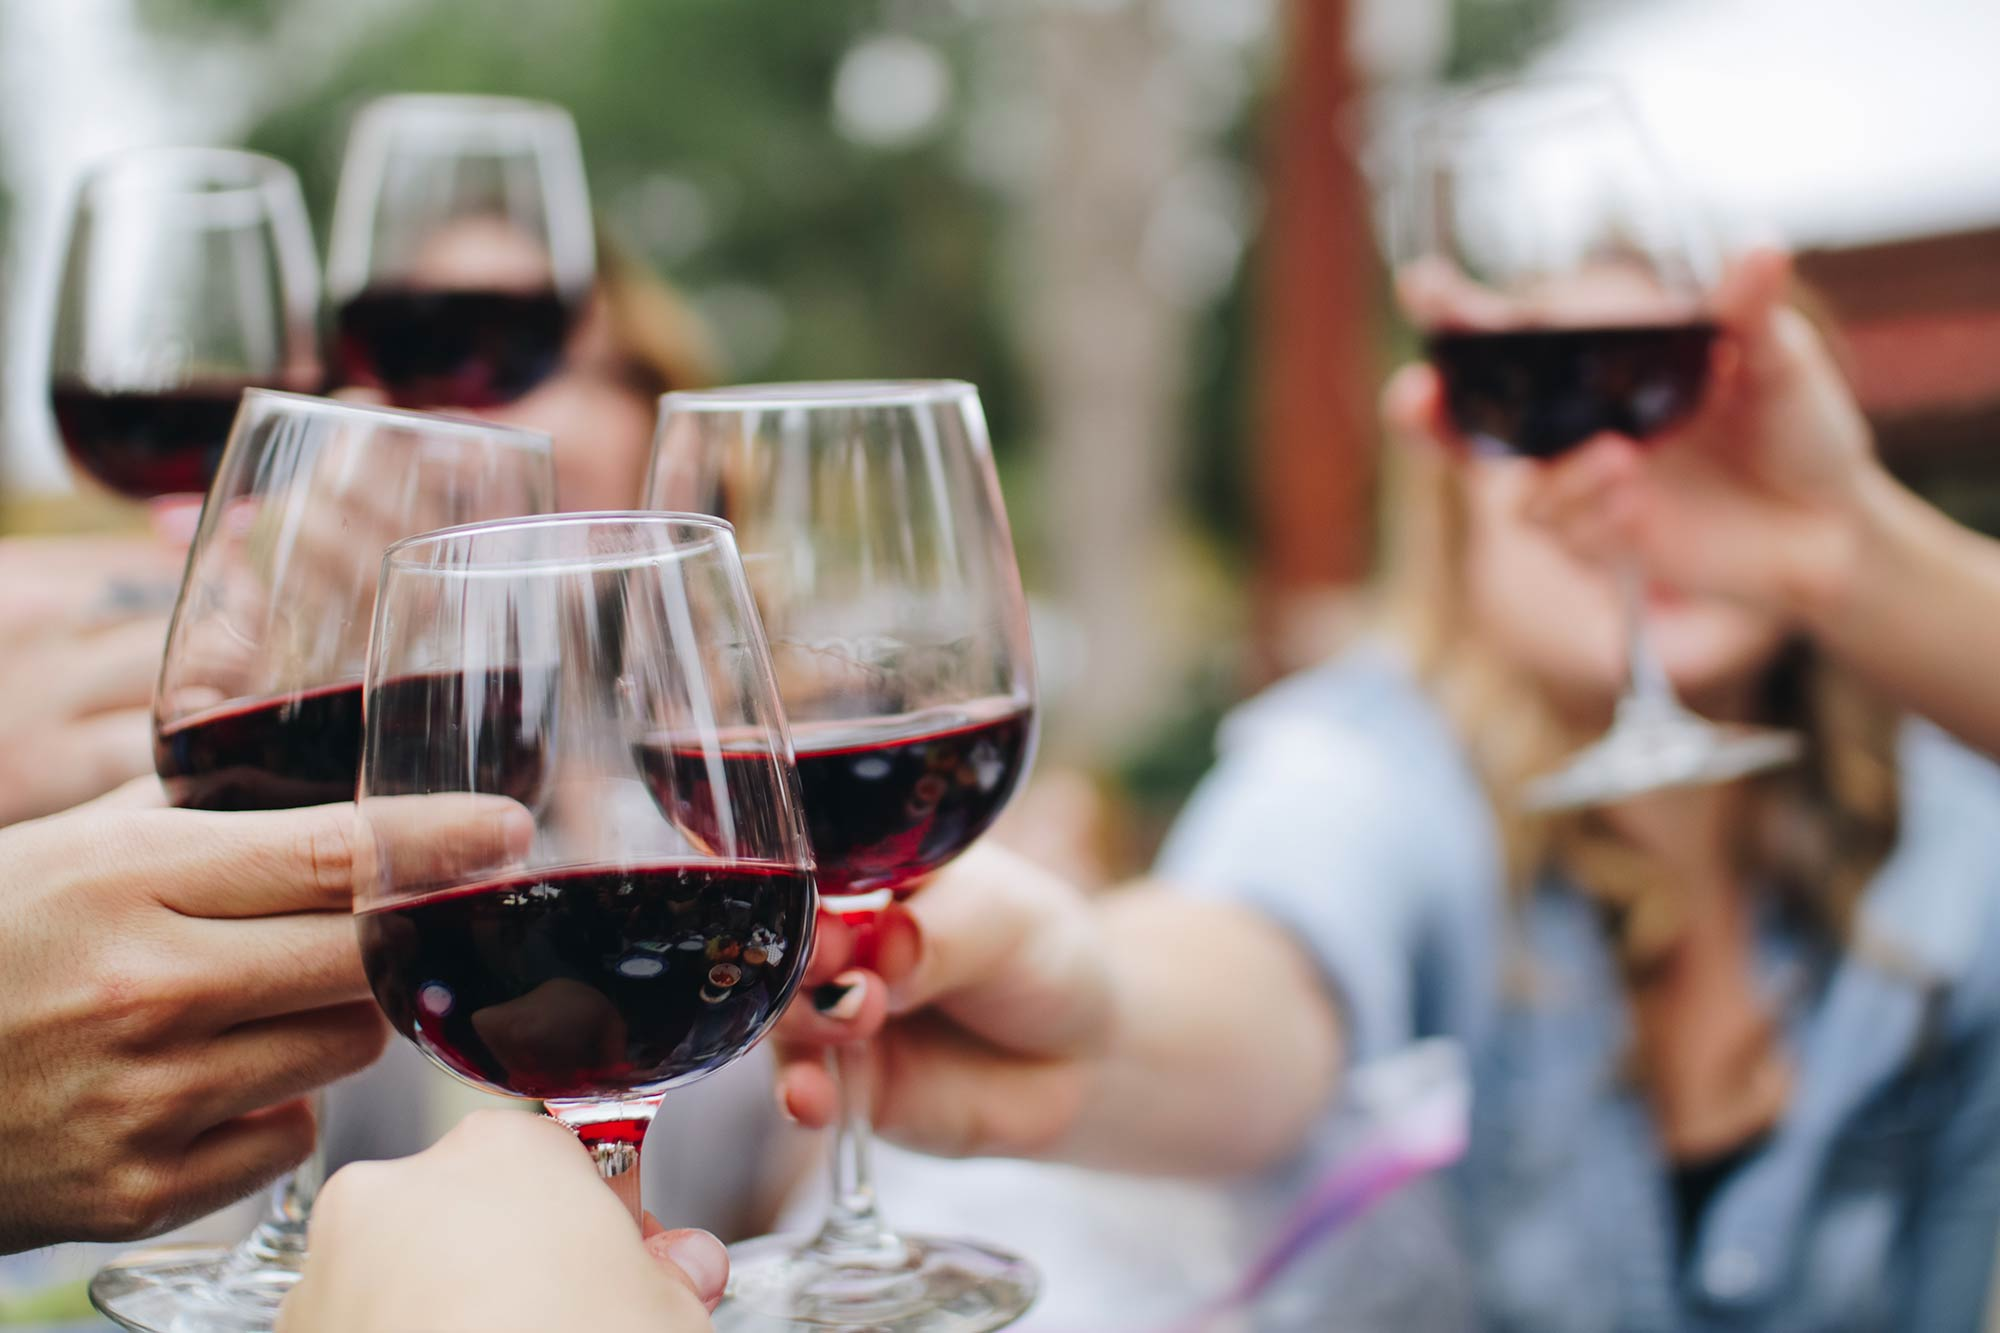 Group of friends toasting with wine glasses